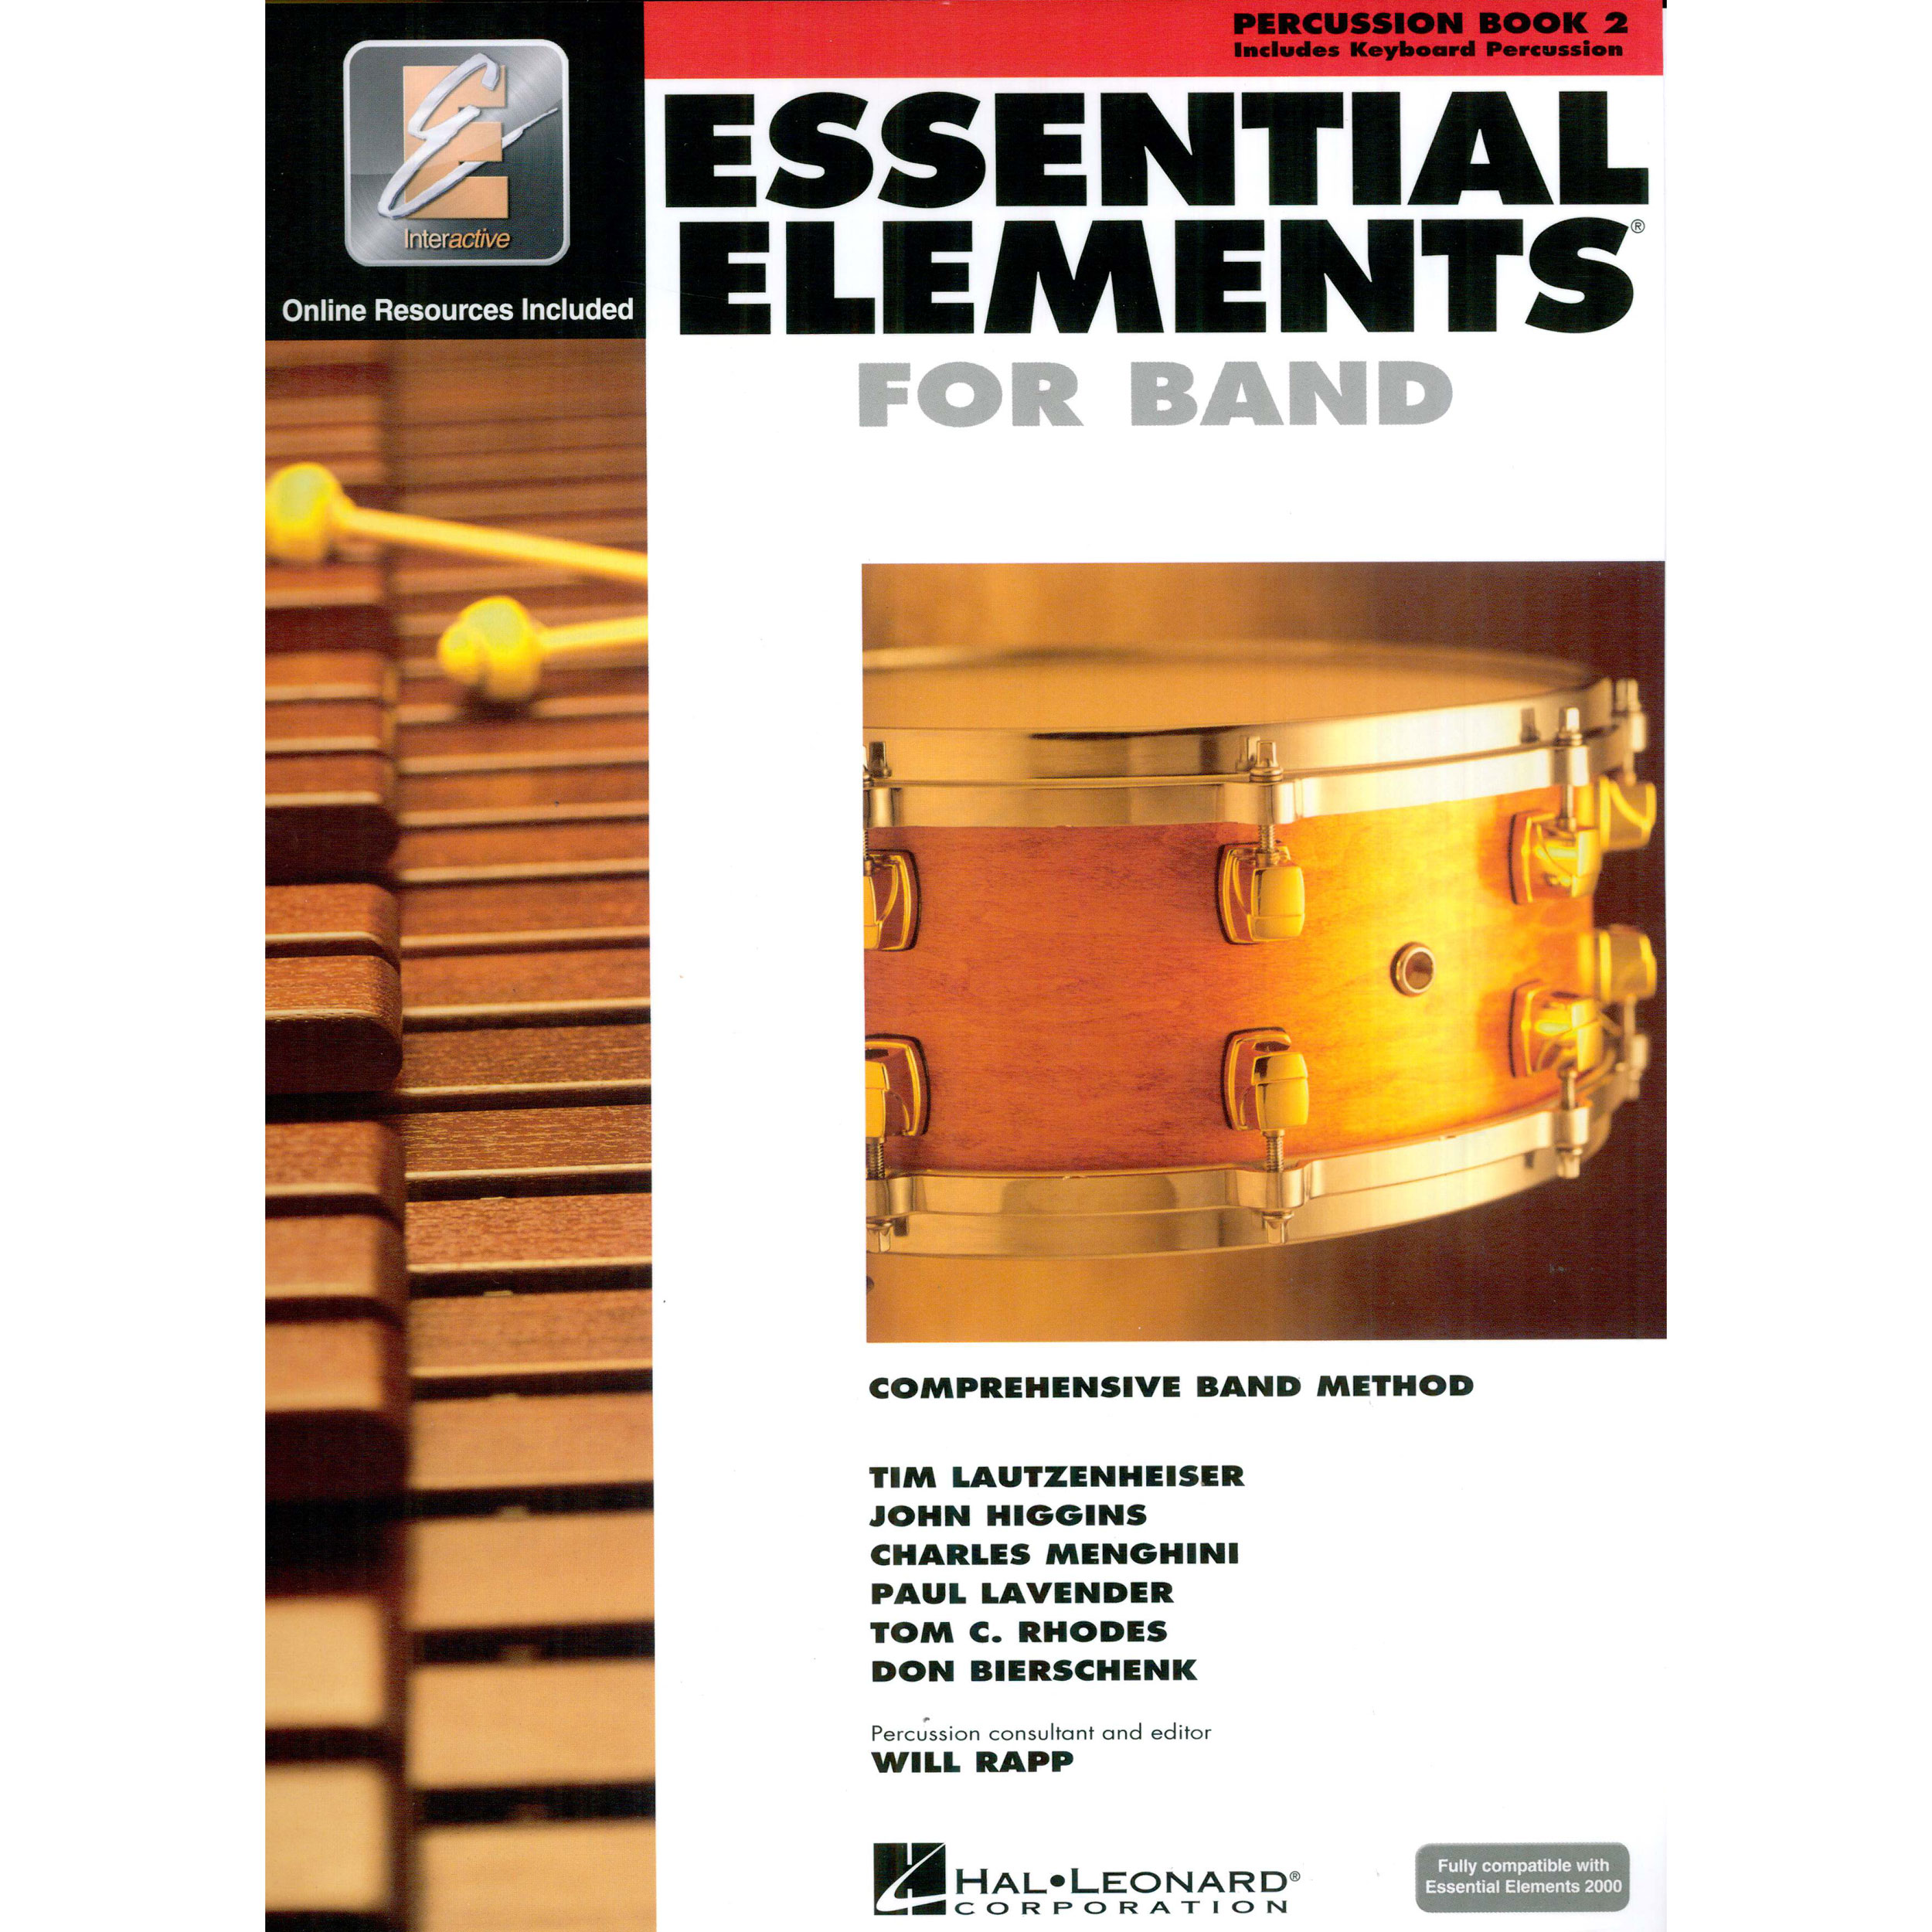 Essential Elements for Band: Percussion Book 2